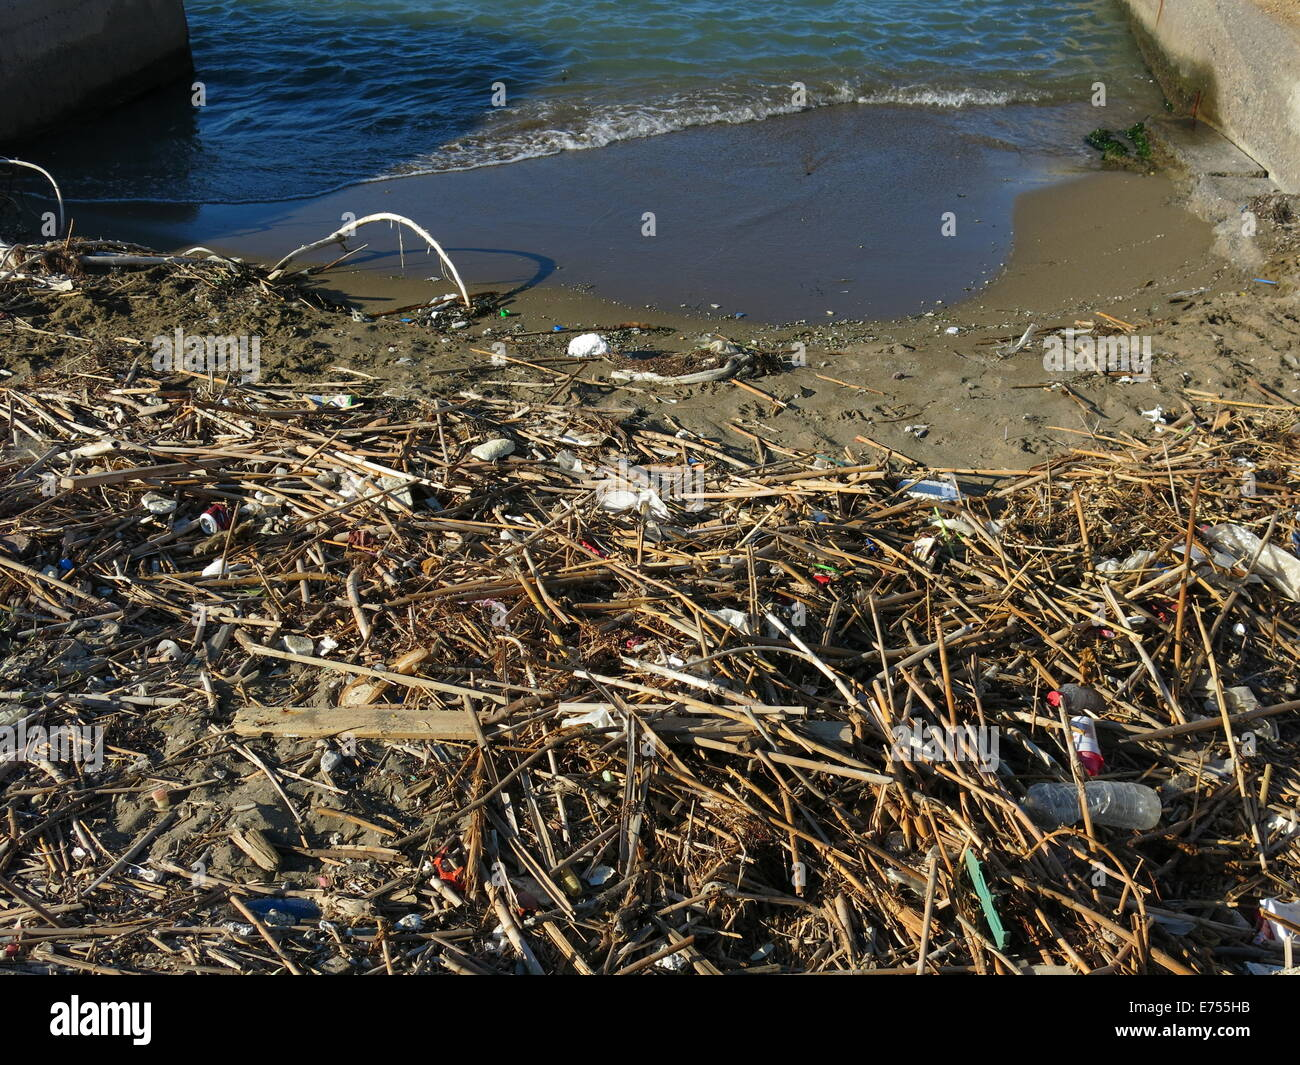 Polluted beach. - Stock Image